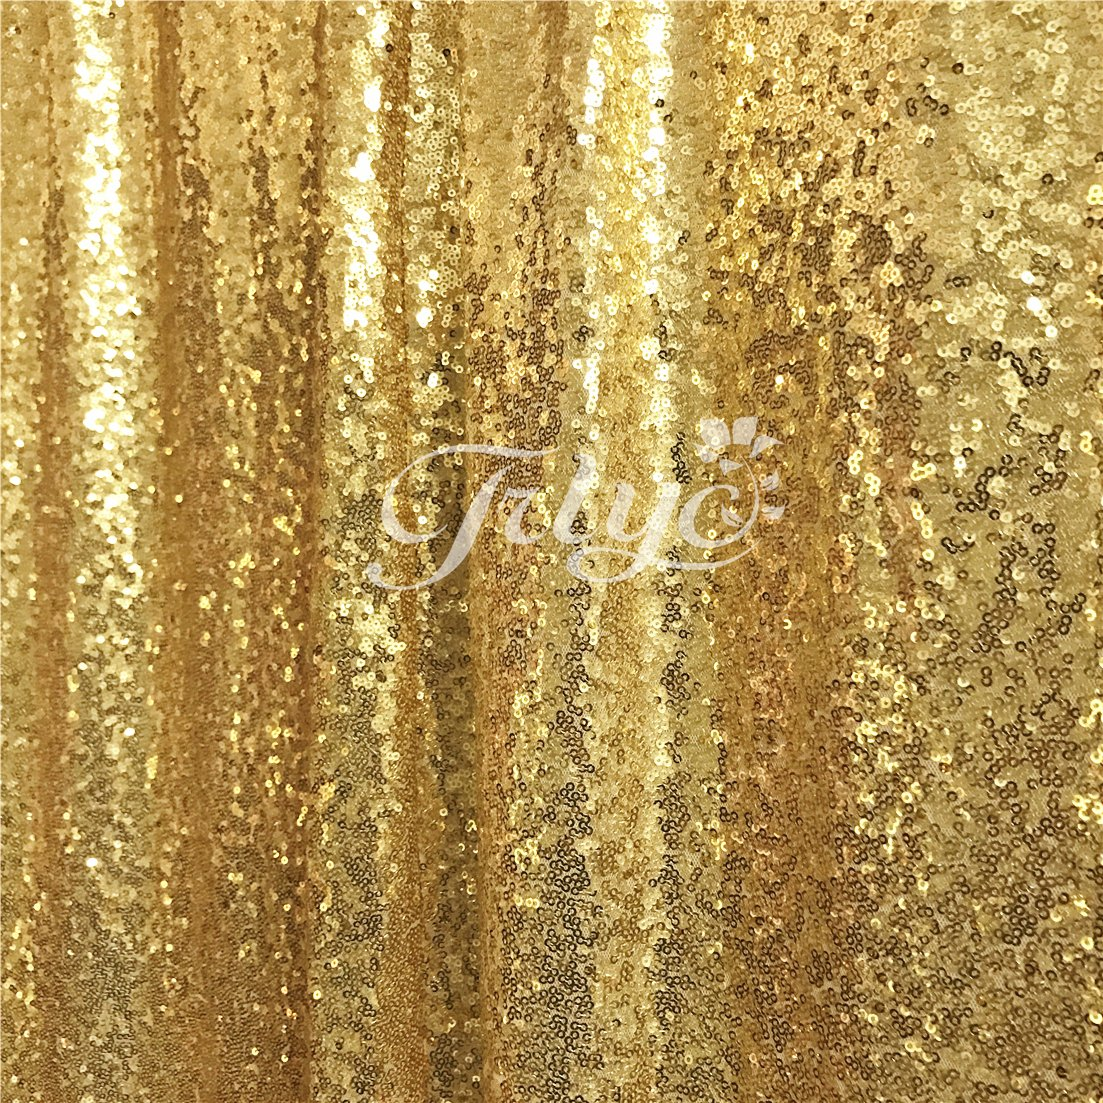 TRLYC 10FT x 10FT Sparkly Photo Booth Backdropゴールドスパンコールウェディングカーテン   B0756D2YKP